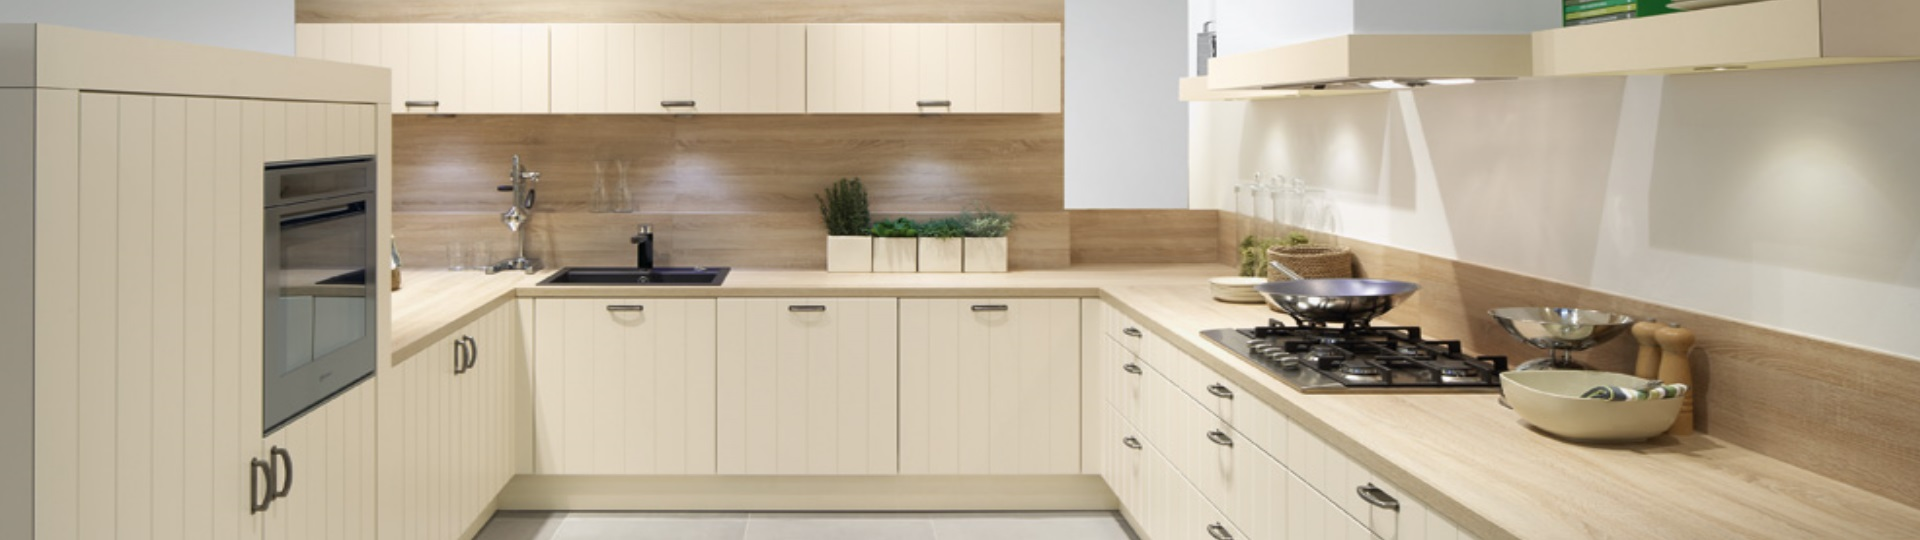 Kitchen Installation Arnos Vale, Arnos Vale Kithen Installers